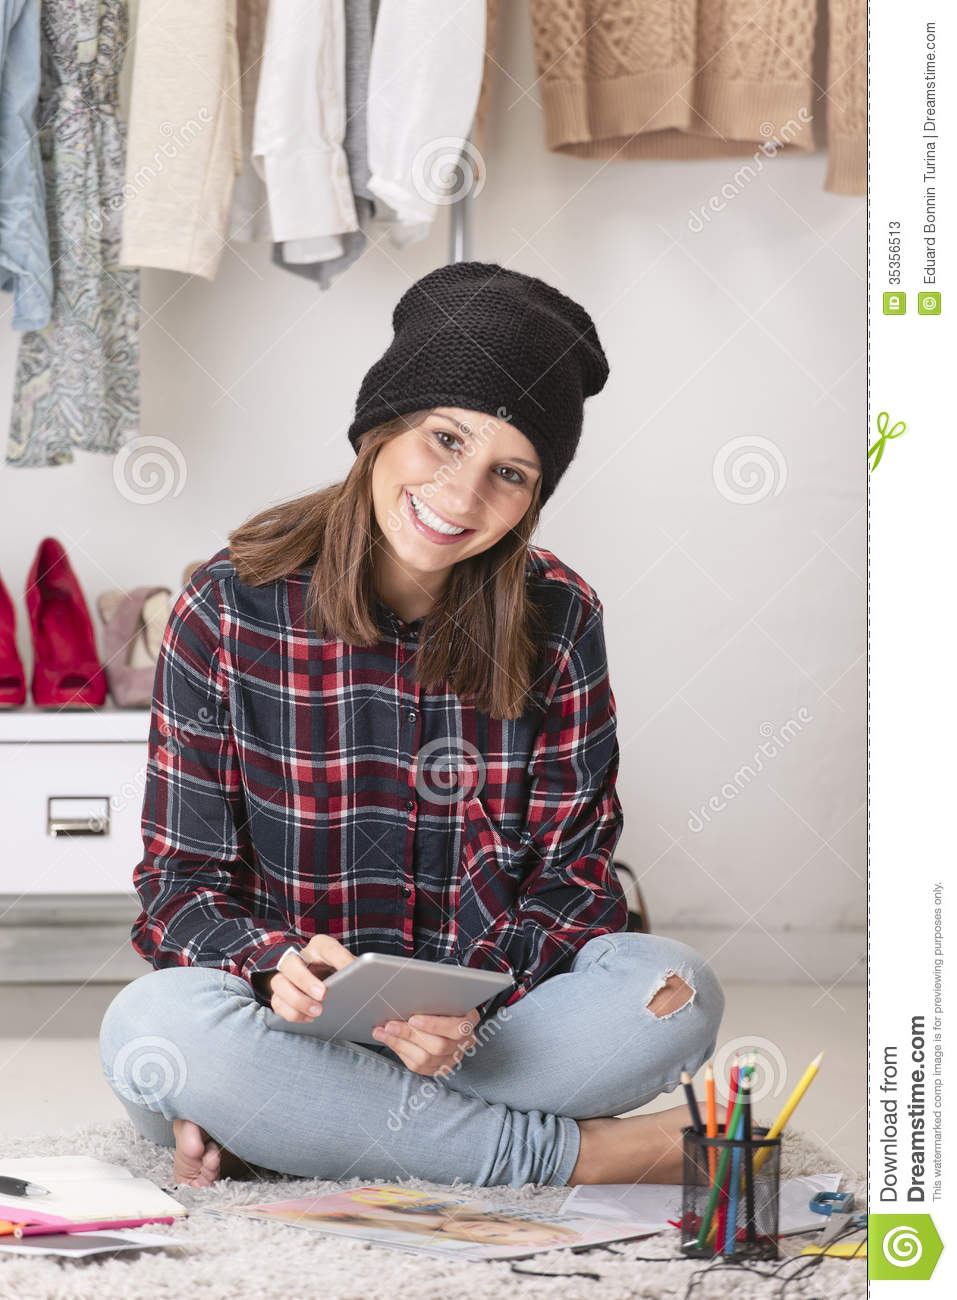 Casual blogger woman working with digital tablet in her fashion office.